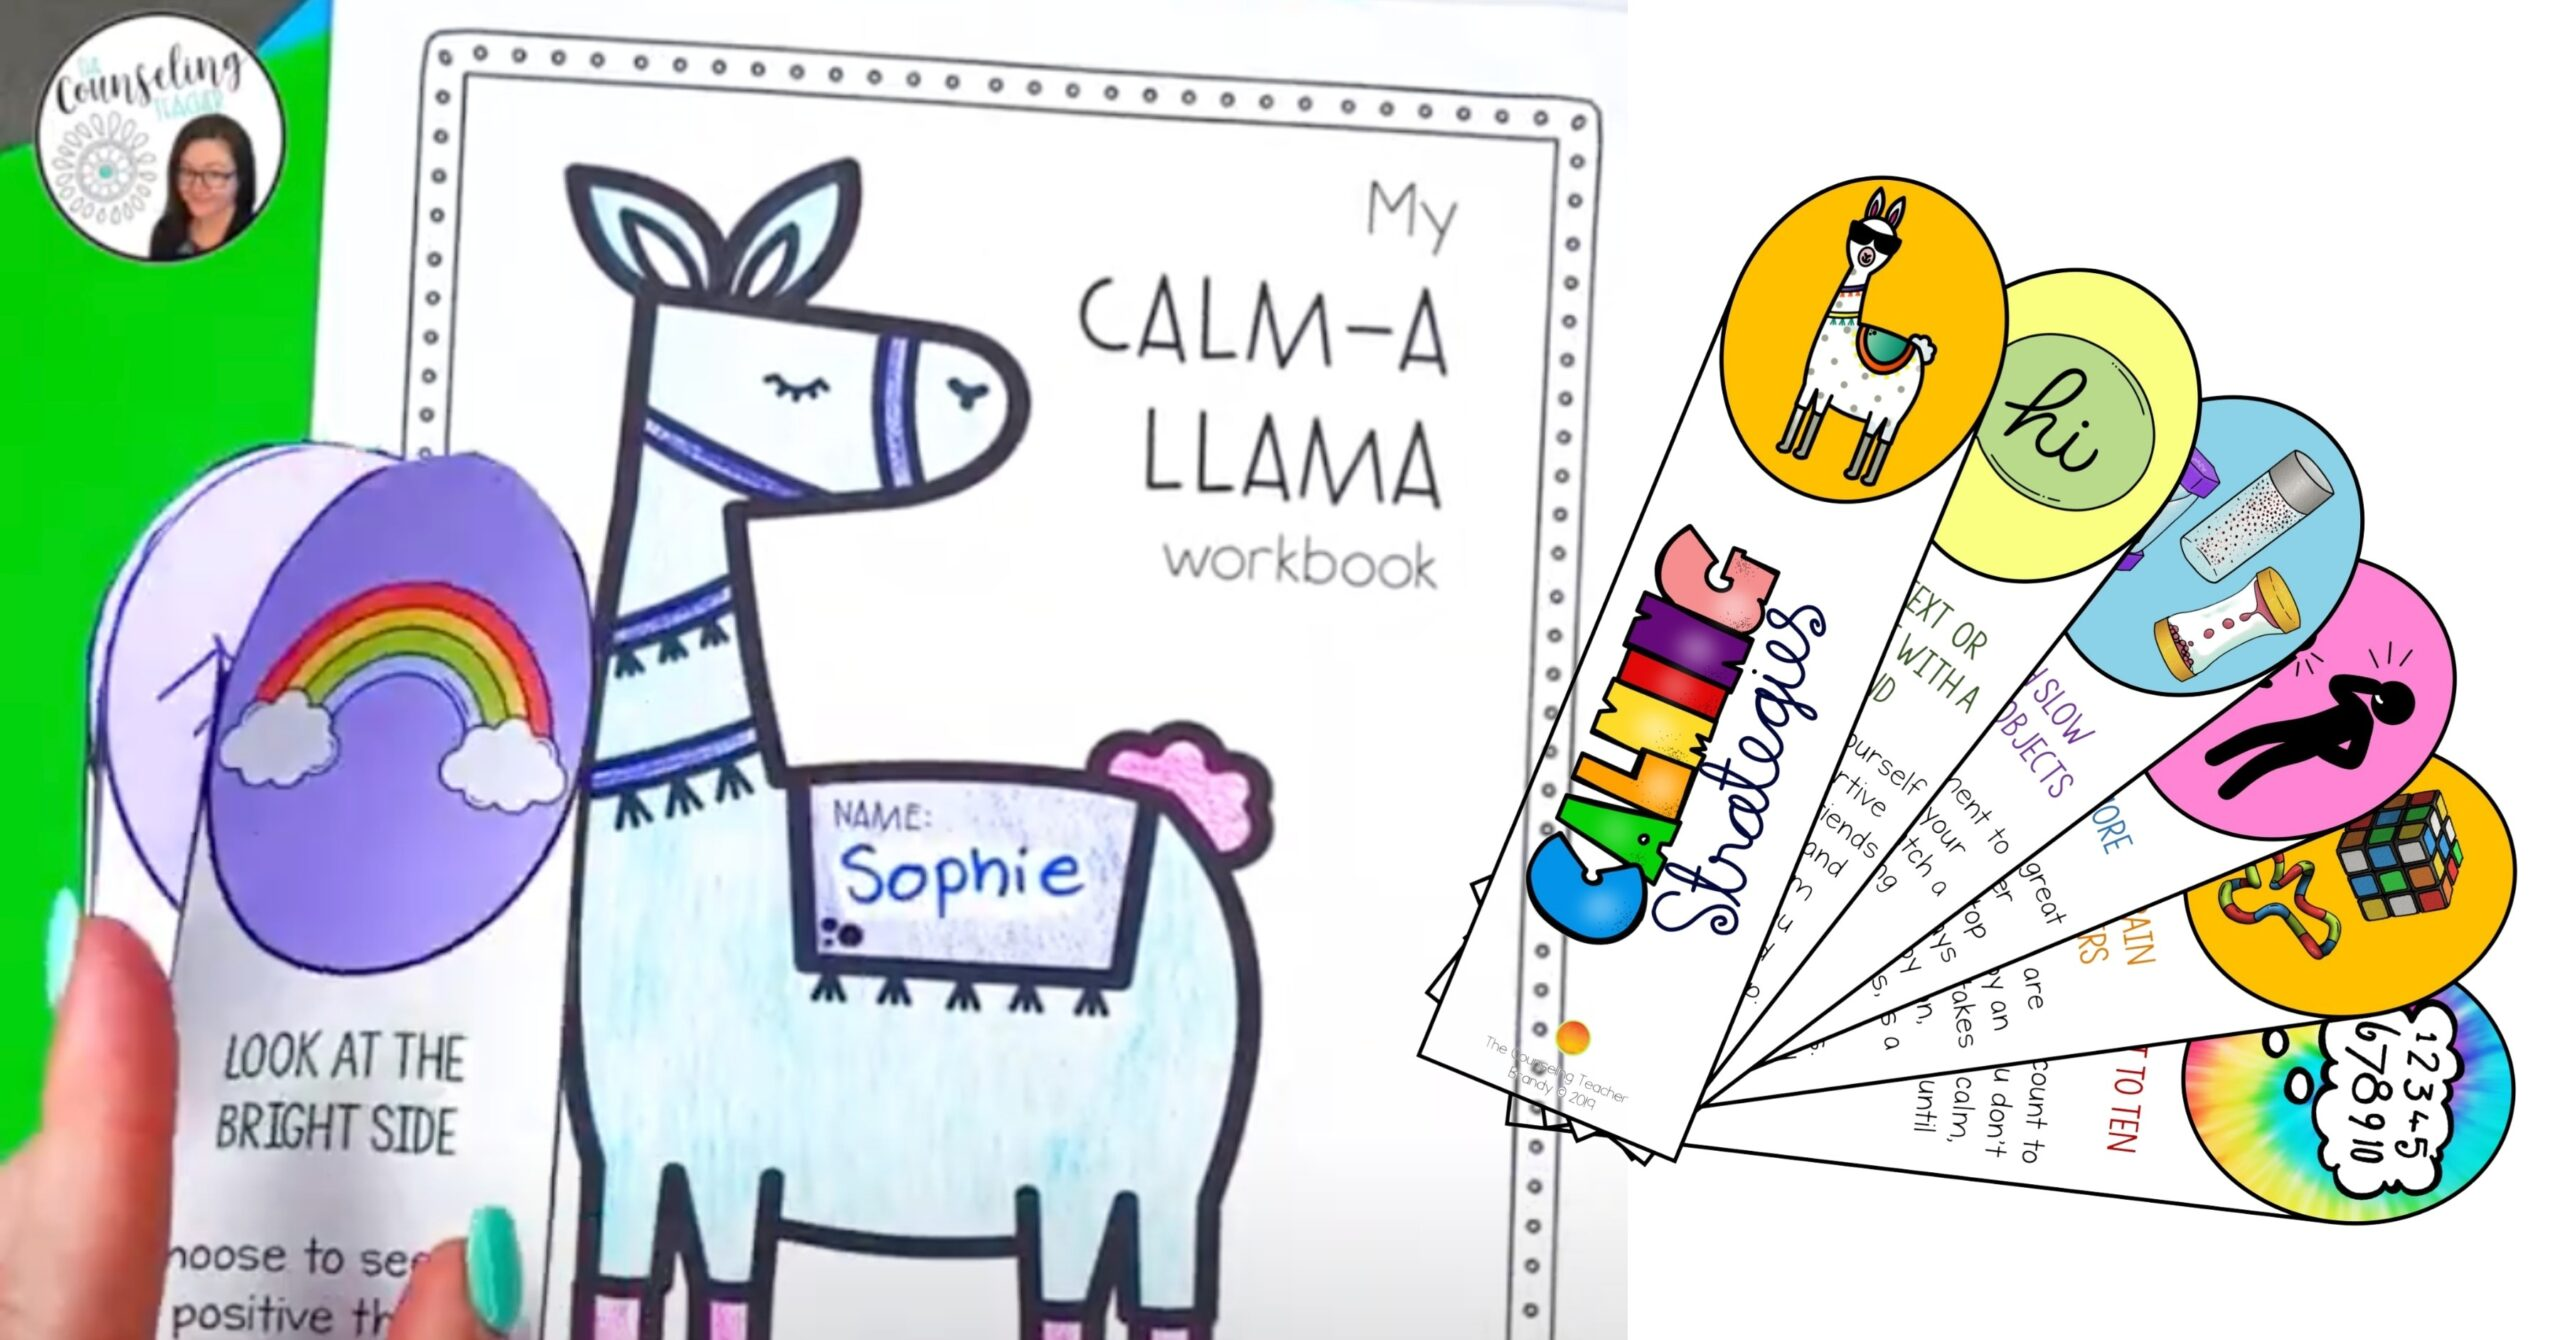 llama themed anxiety resources for kids